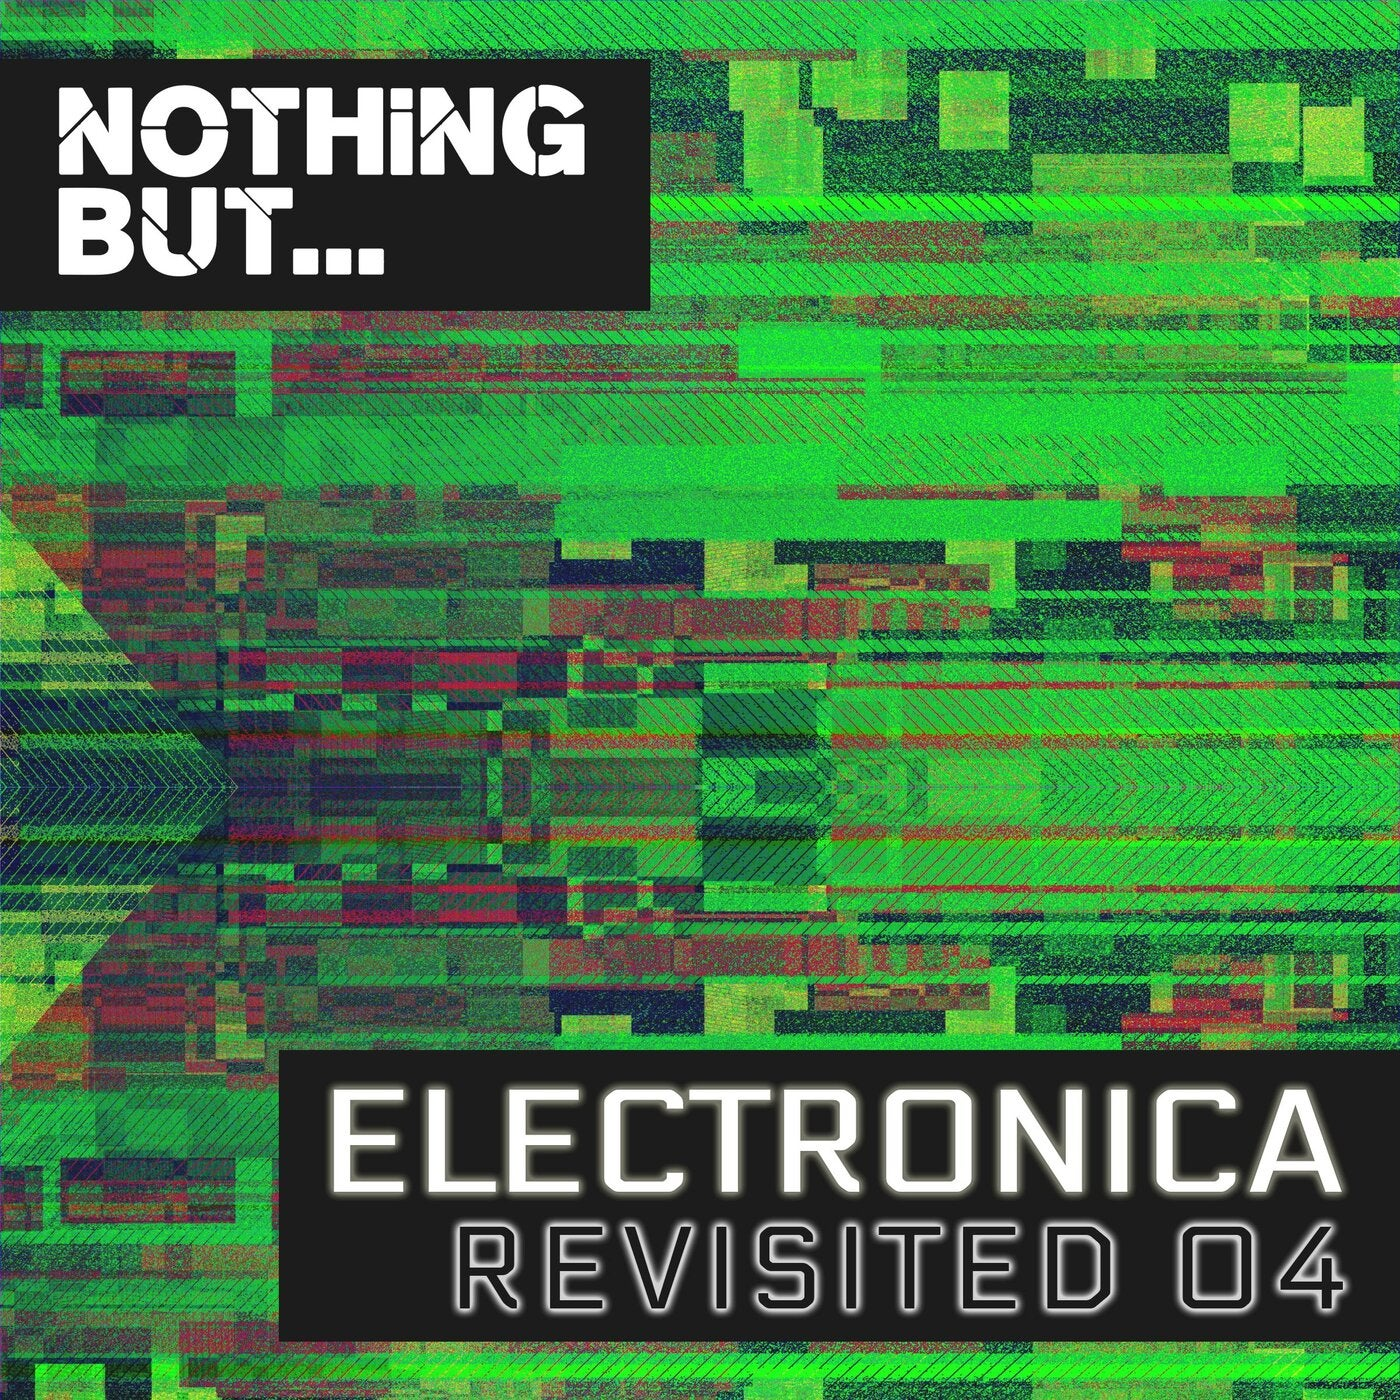 Various Performers - Nothing But… Electronica Revisited, Vol. 04 (2021)